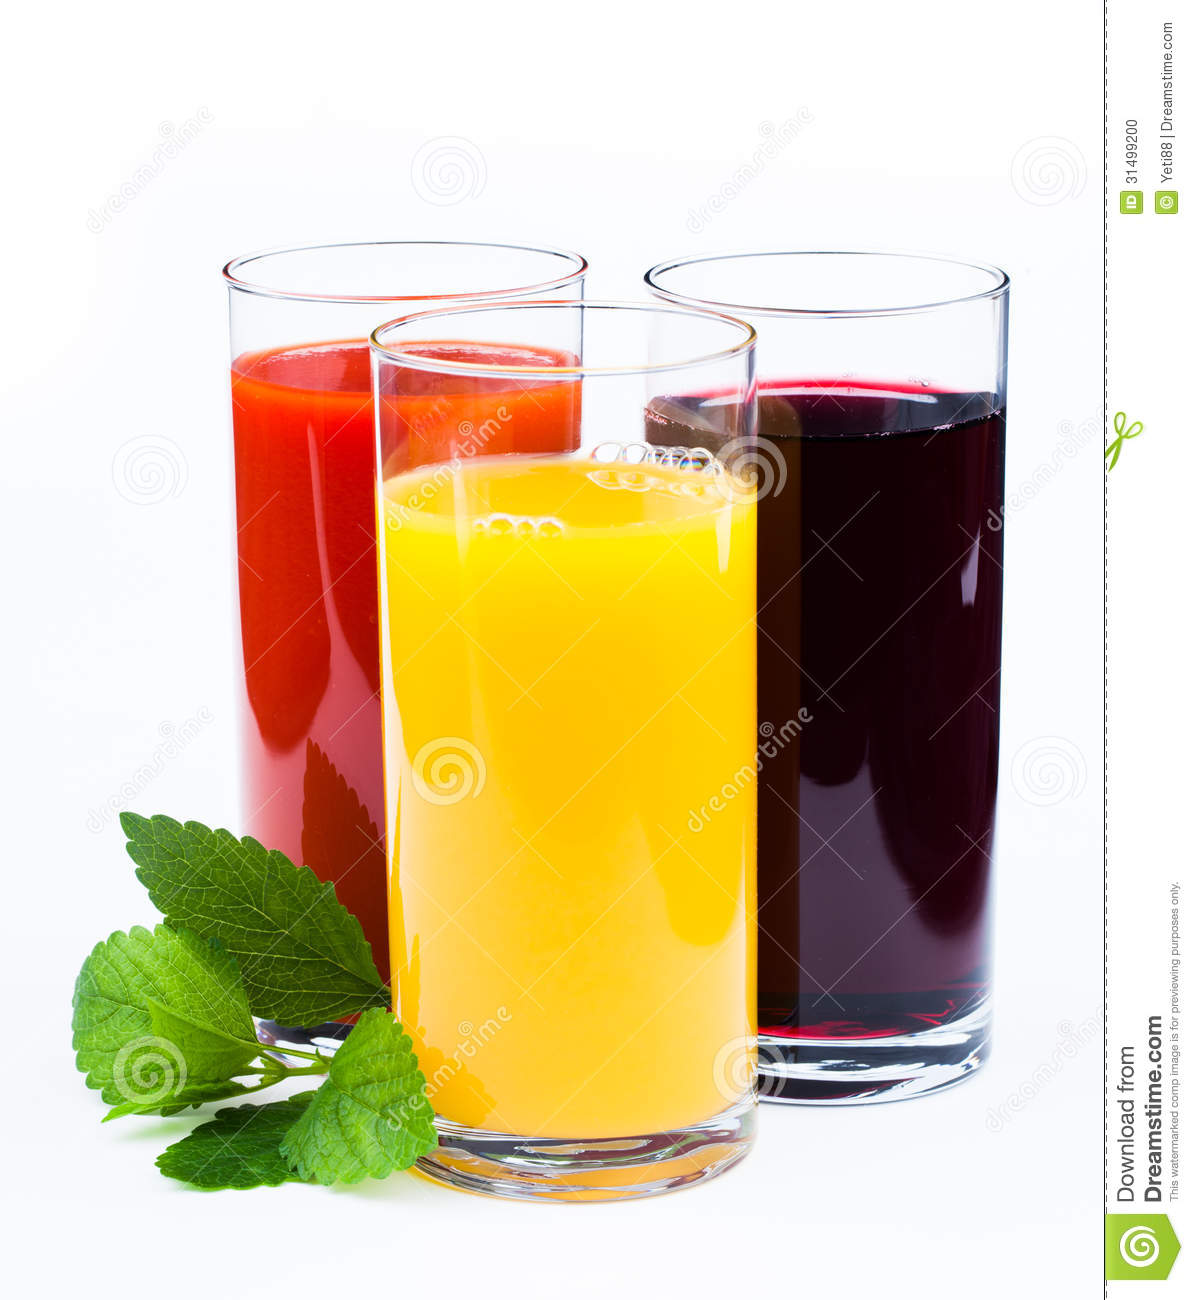 Pin Fruit-juice-glass-wallpaper-1920x1080jpg on Pinterest